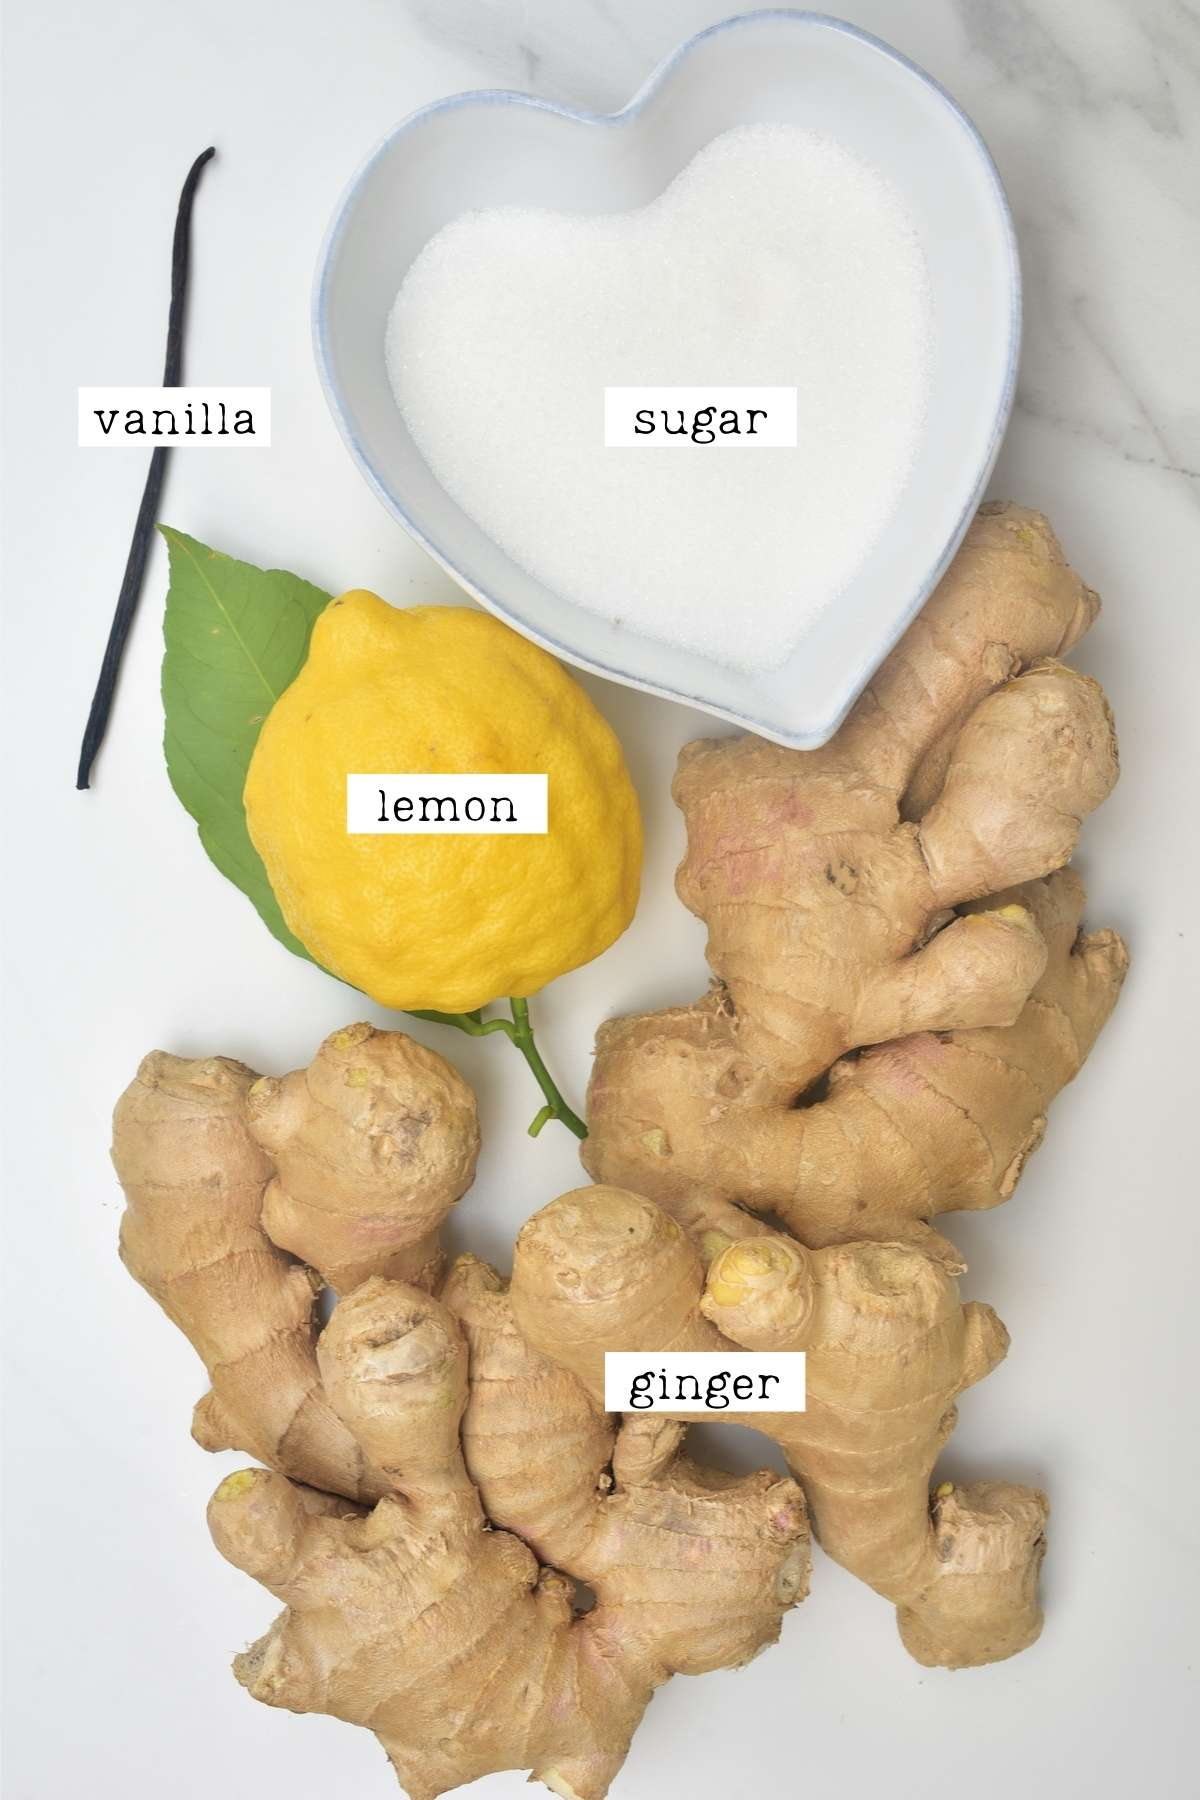 Ingredients for candied ginger